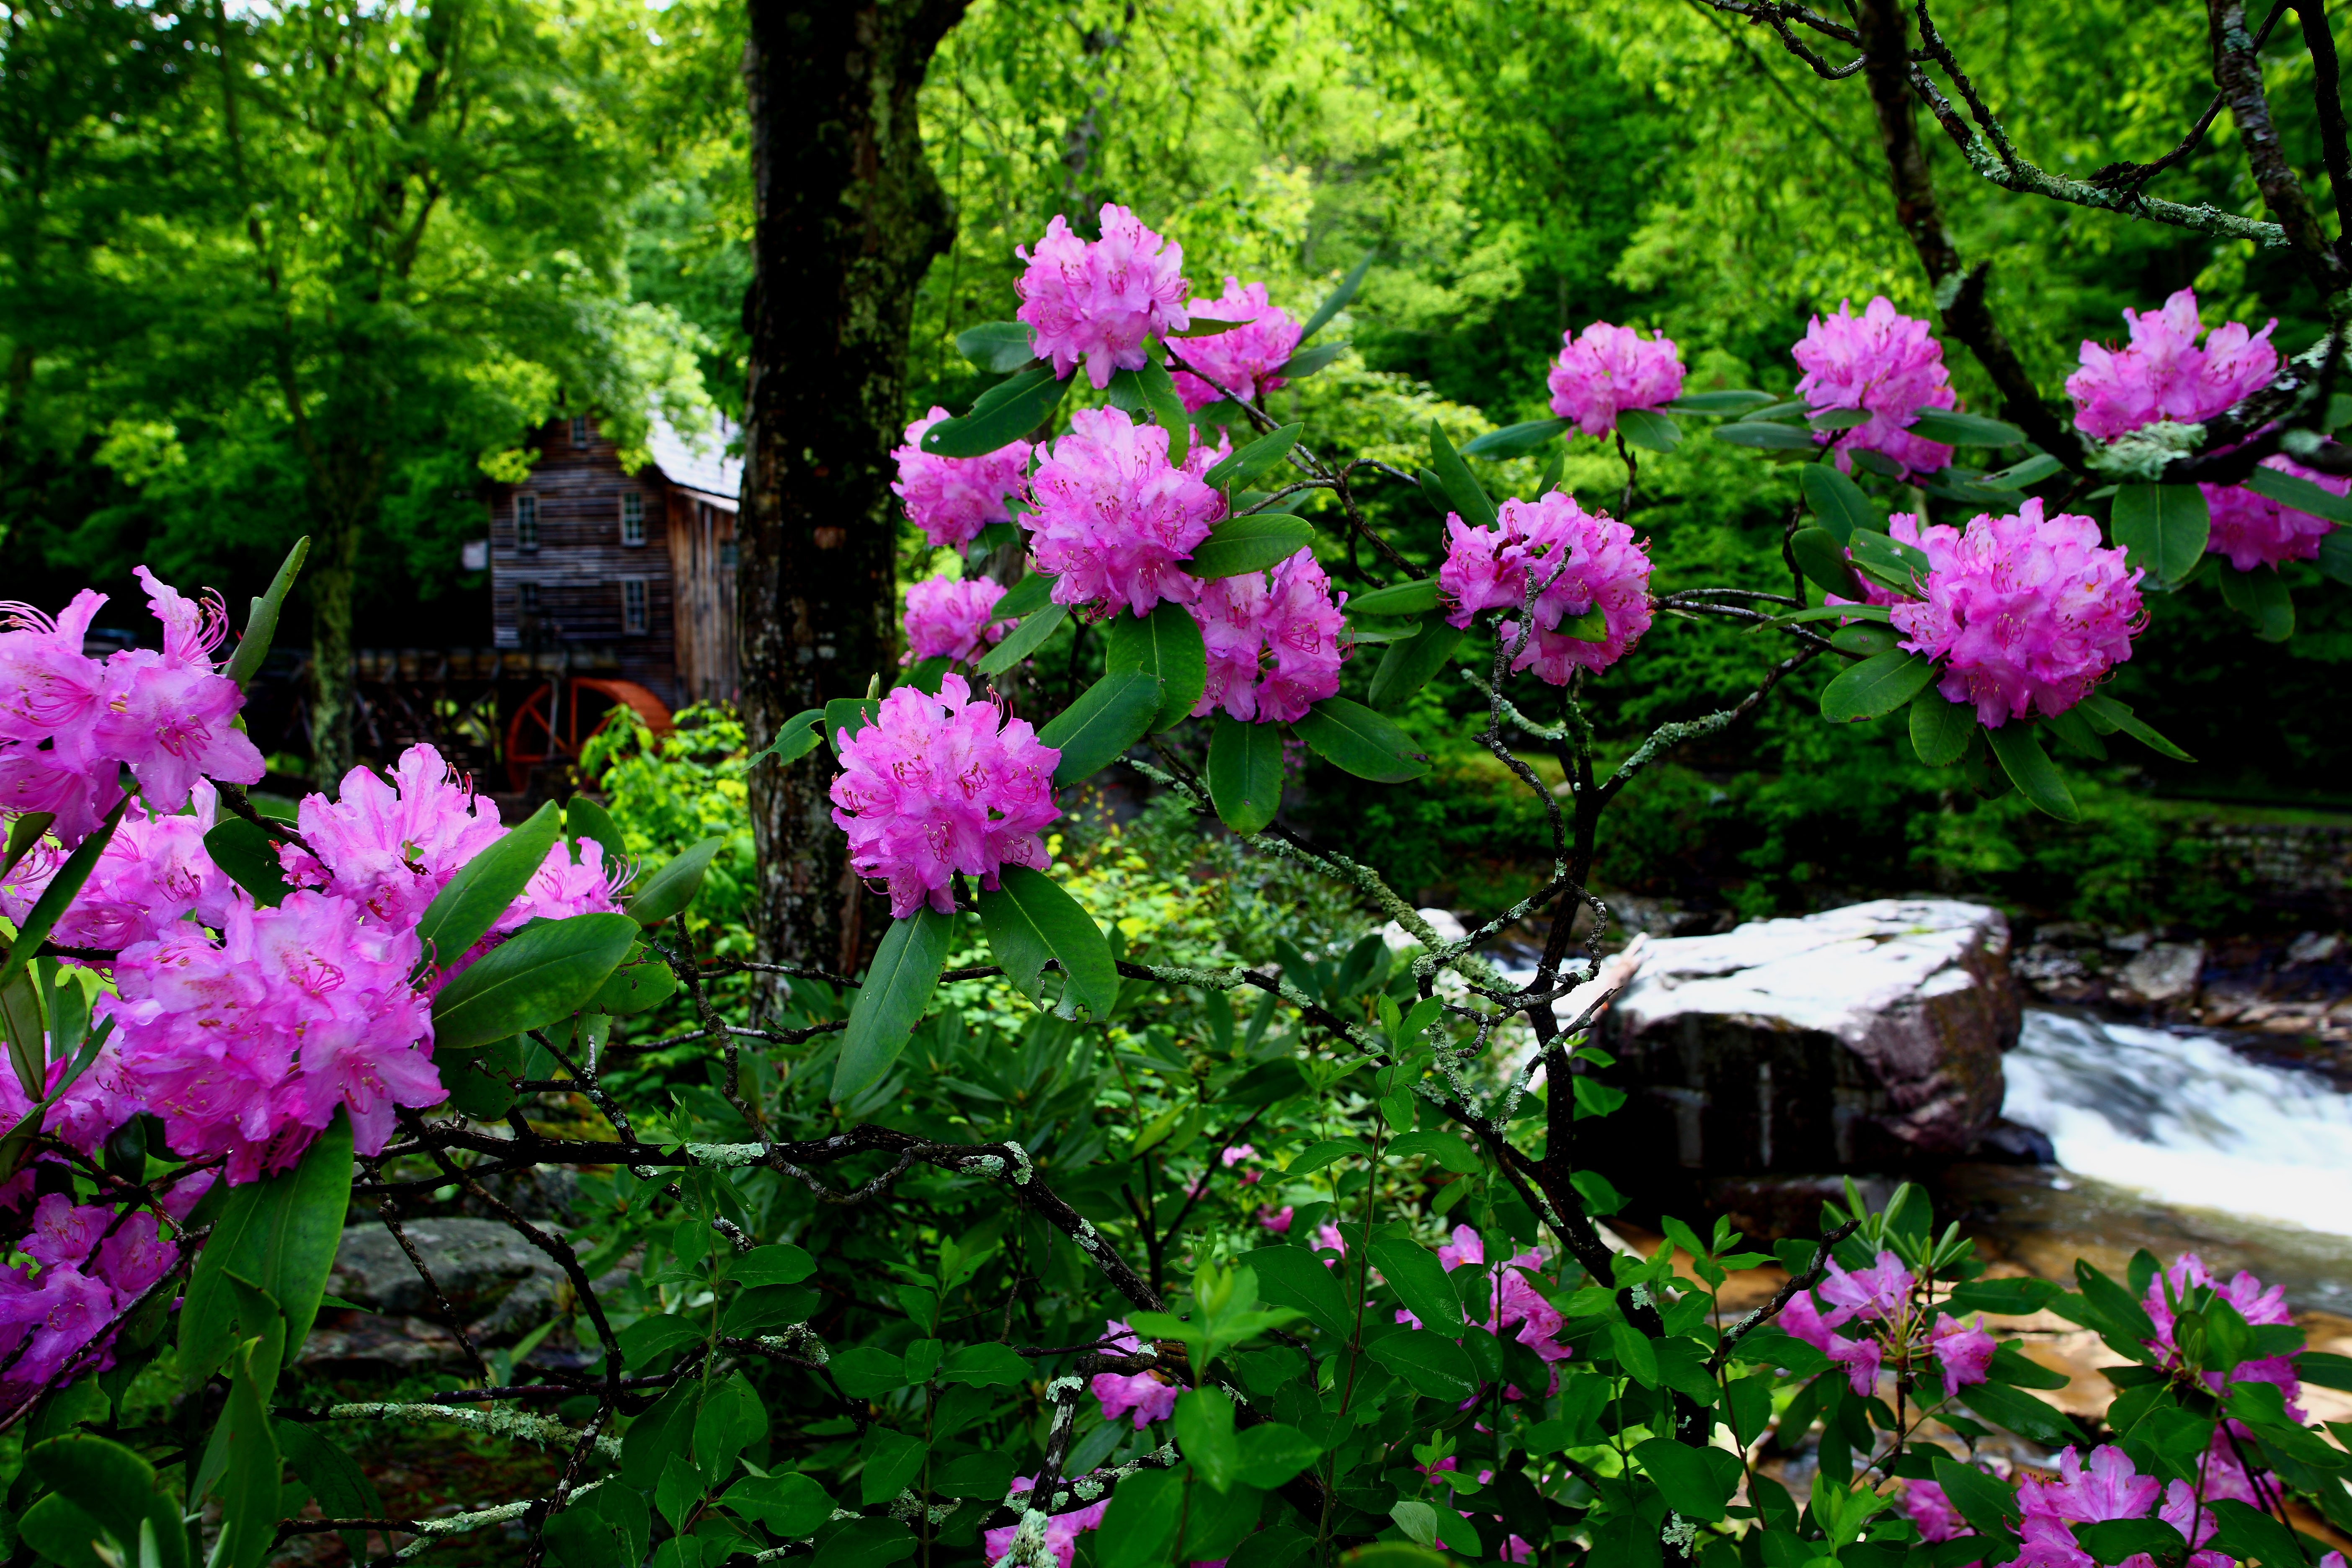 File:Country-mill-summertime-flowers